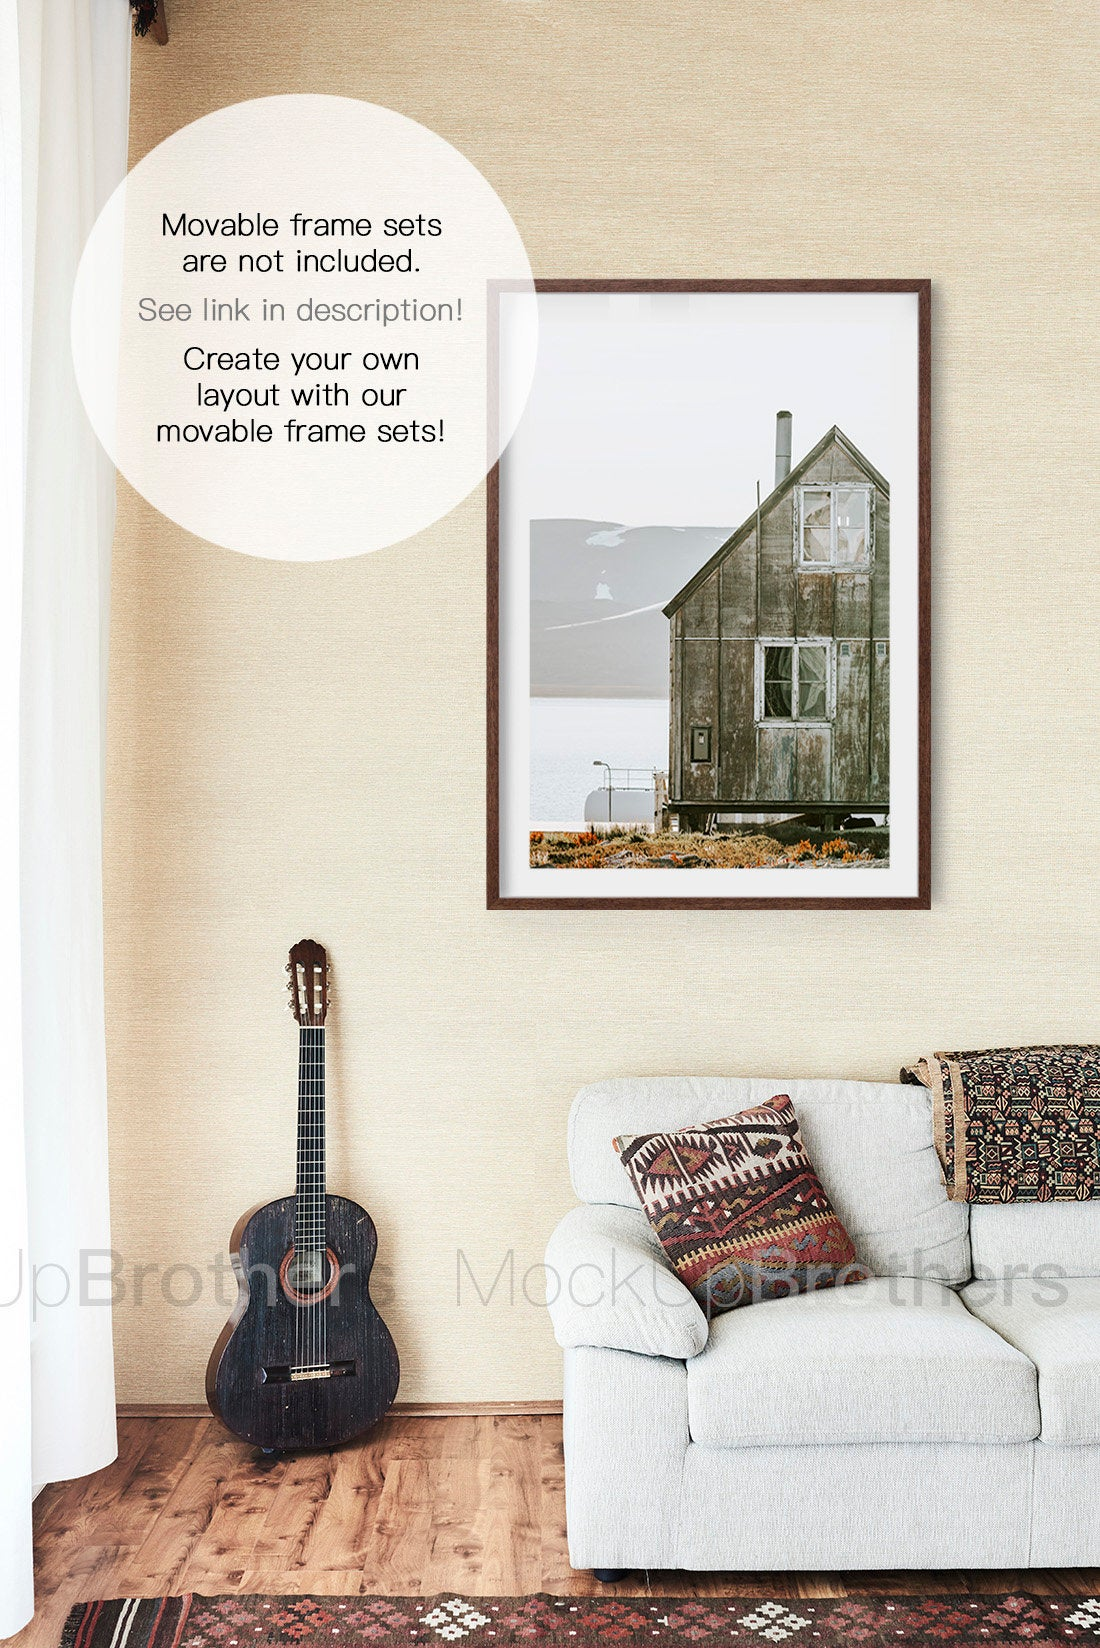 Rustic living room mockup with blank wall and frame